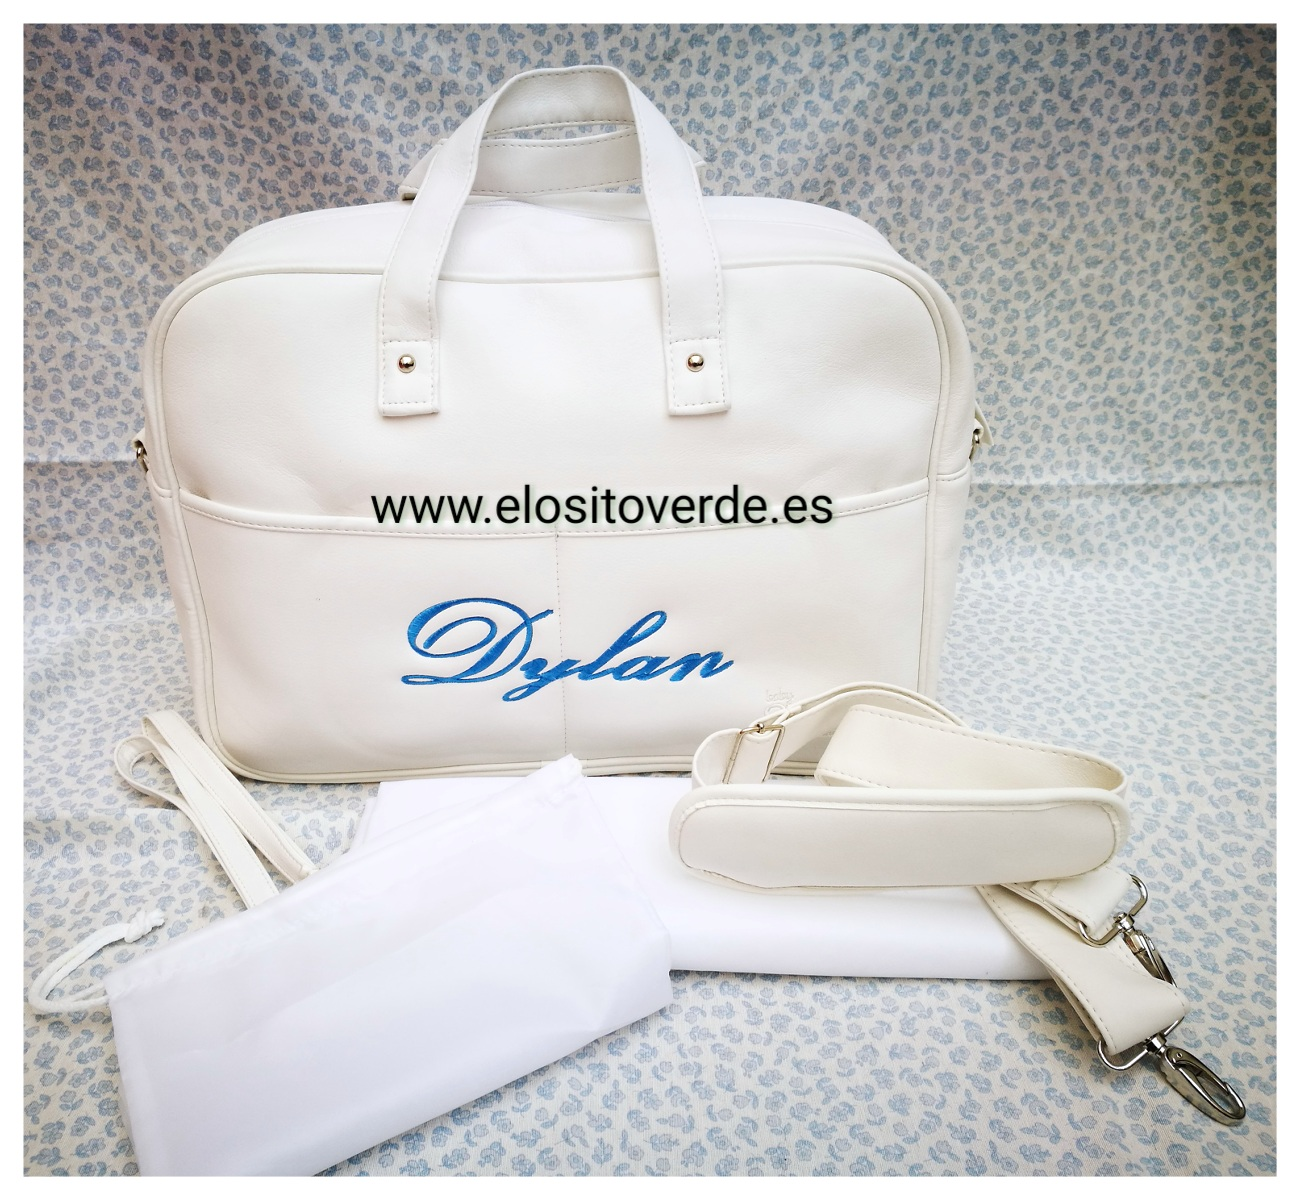 Bolso Maleta hospital bordado blanco polipiel alta calidad.jpg